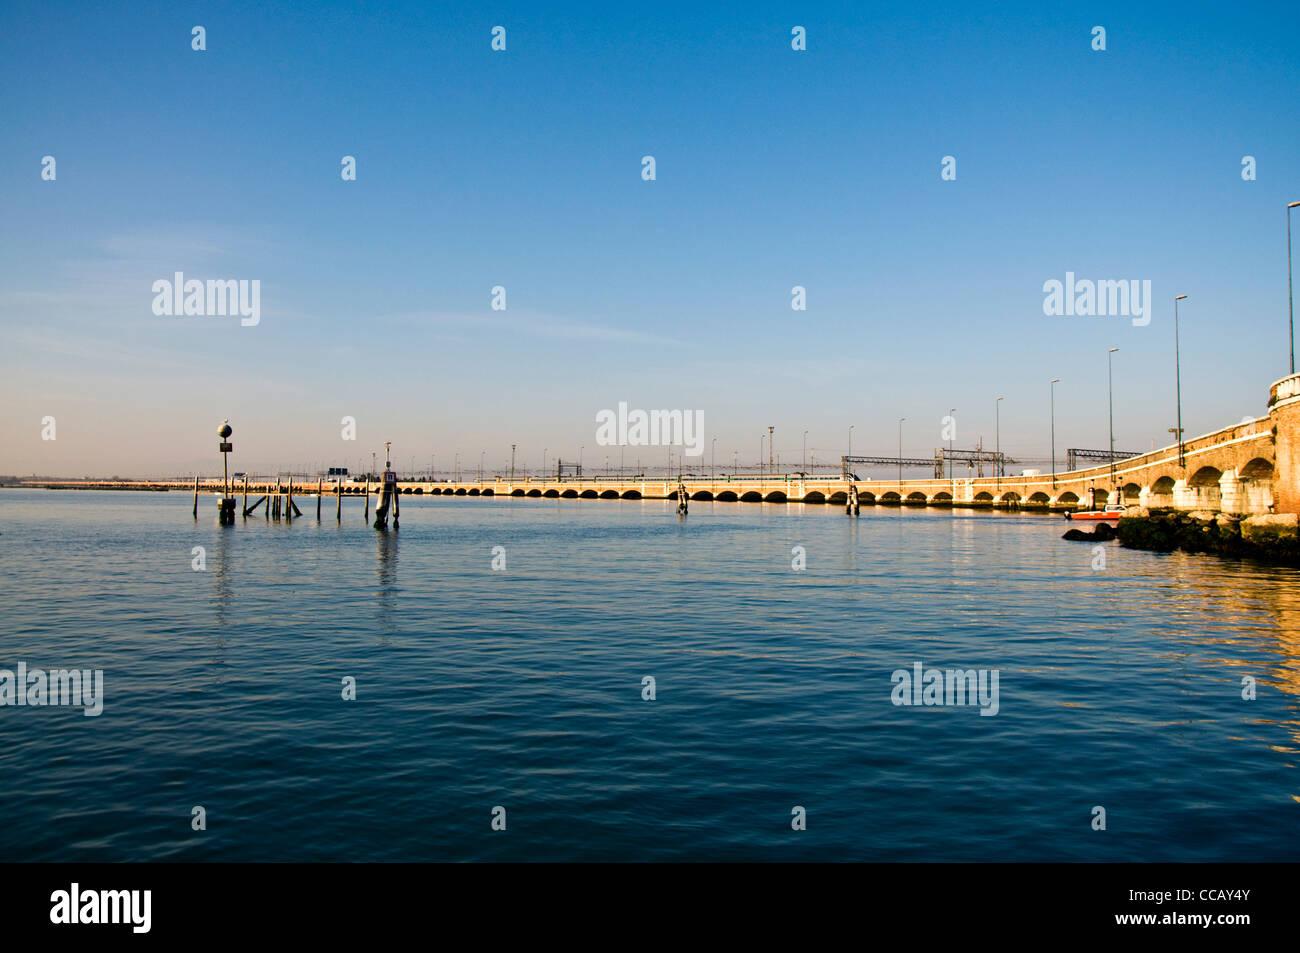 Road and rail causeway connecting Venice with mainland Italy Ponte Della Liberta - Stock Image